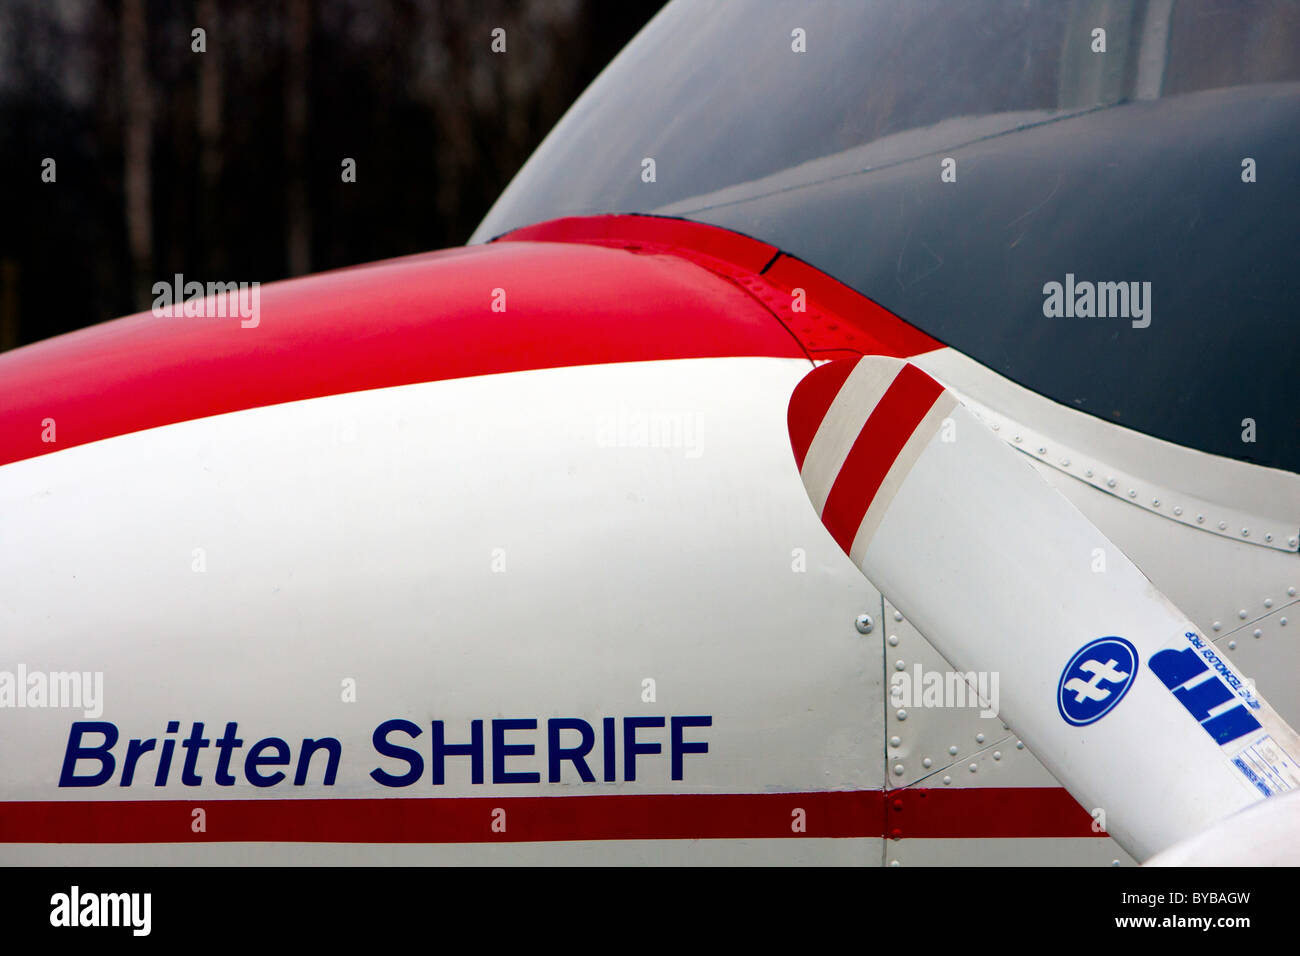 The nose and front window of the Britten Sheriff airplane at the aeroport beside East Midlands Airport in Nottingham - Stock Image